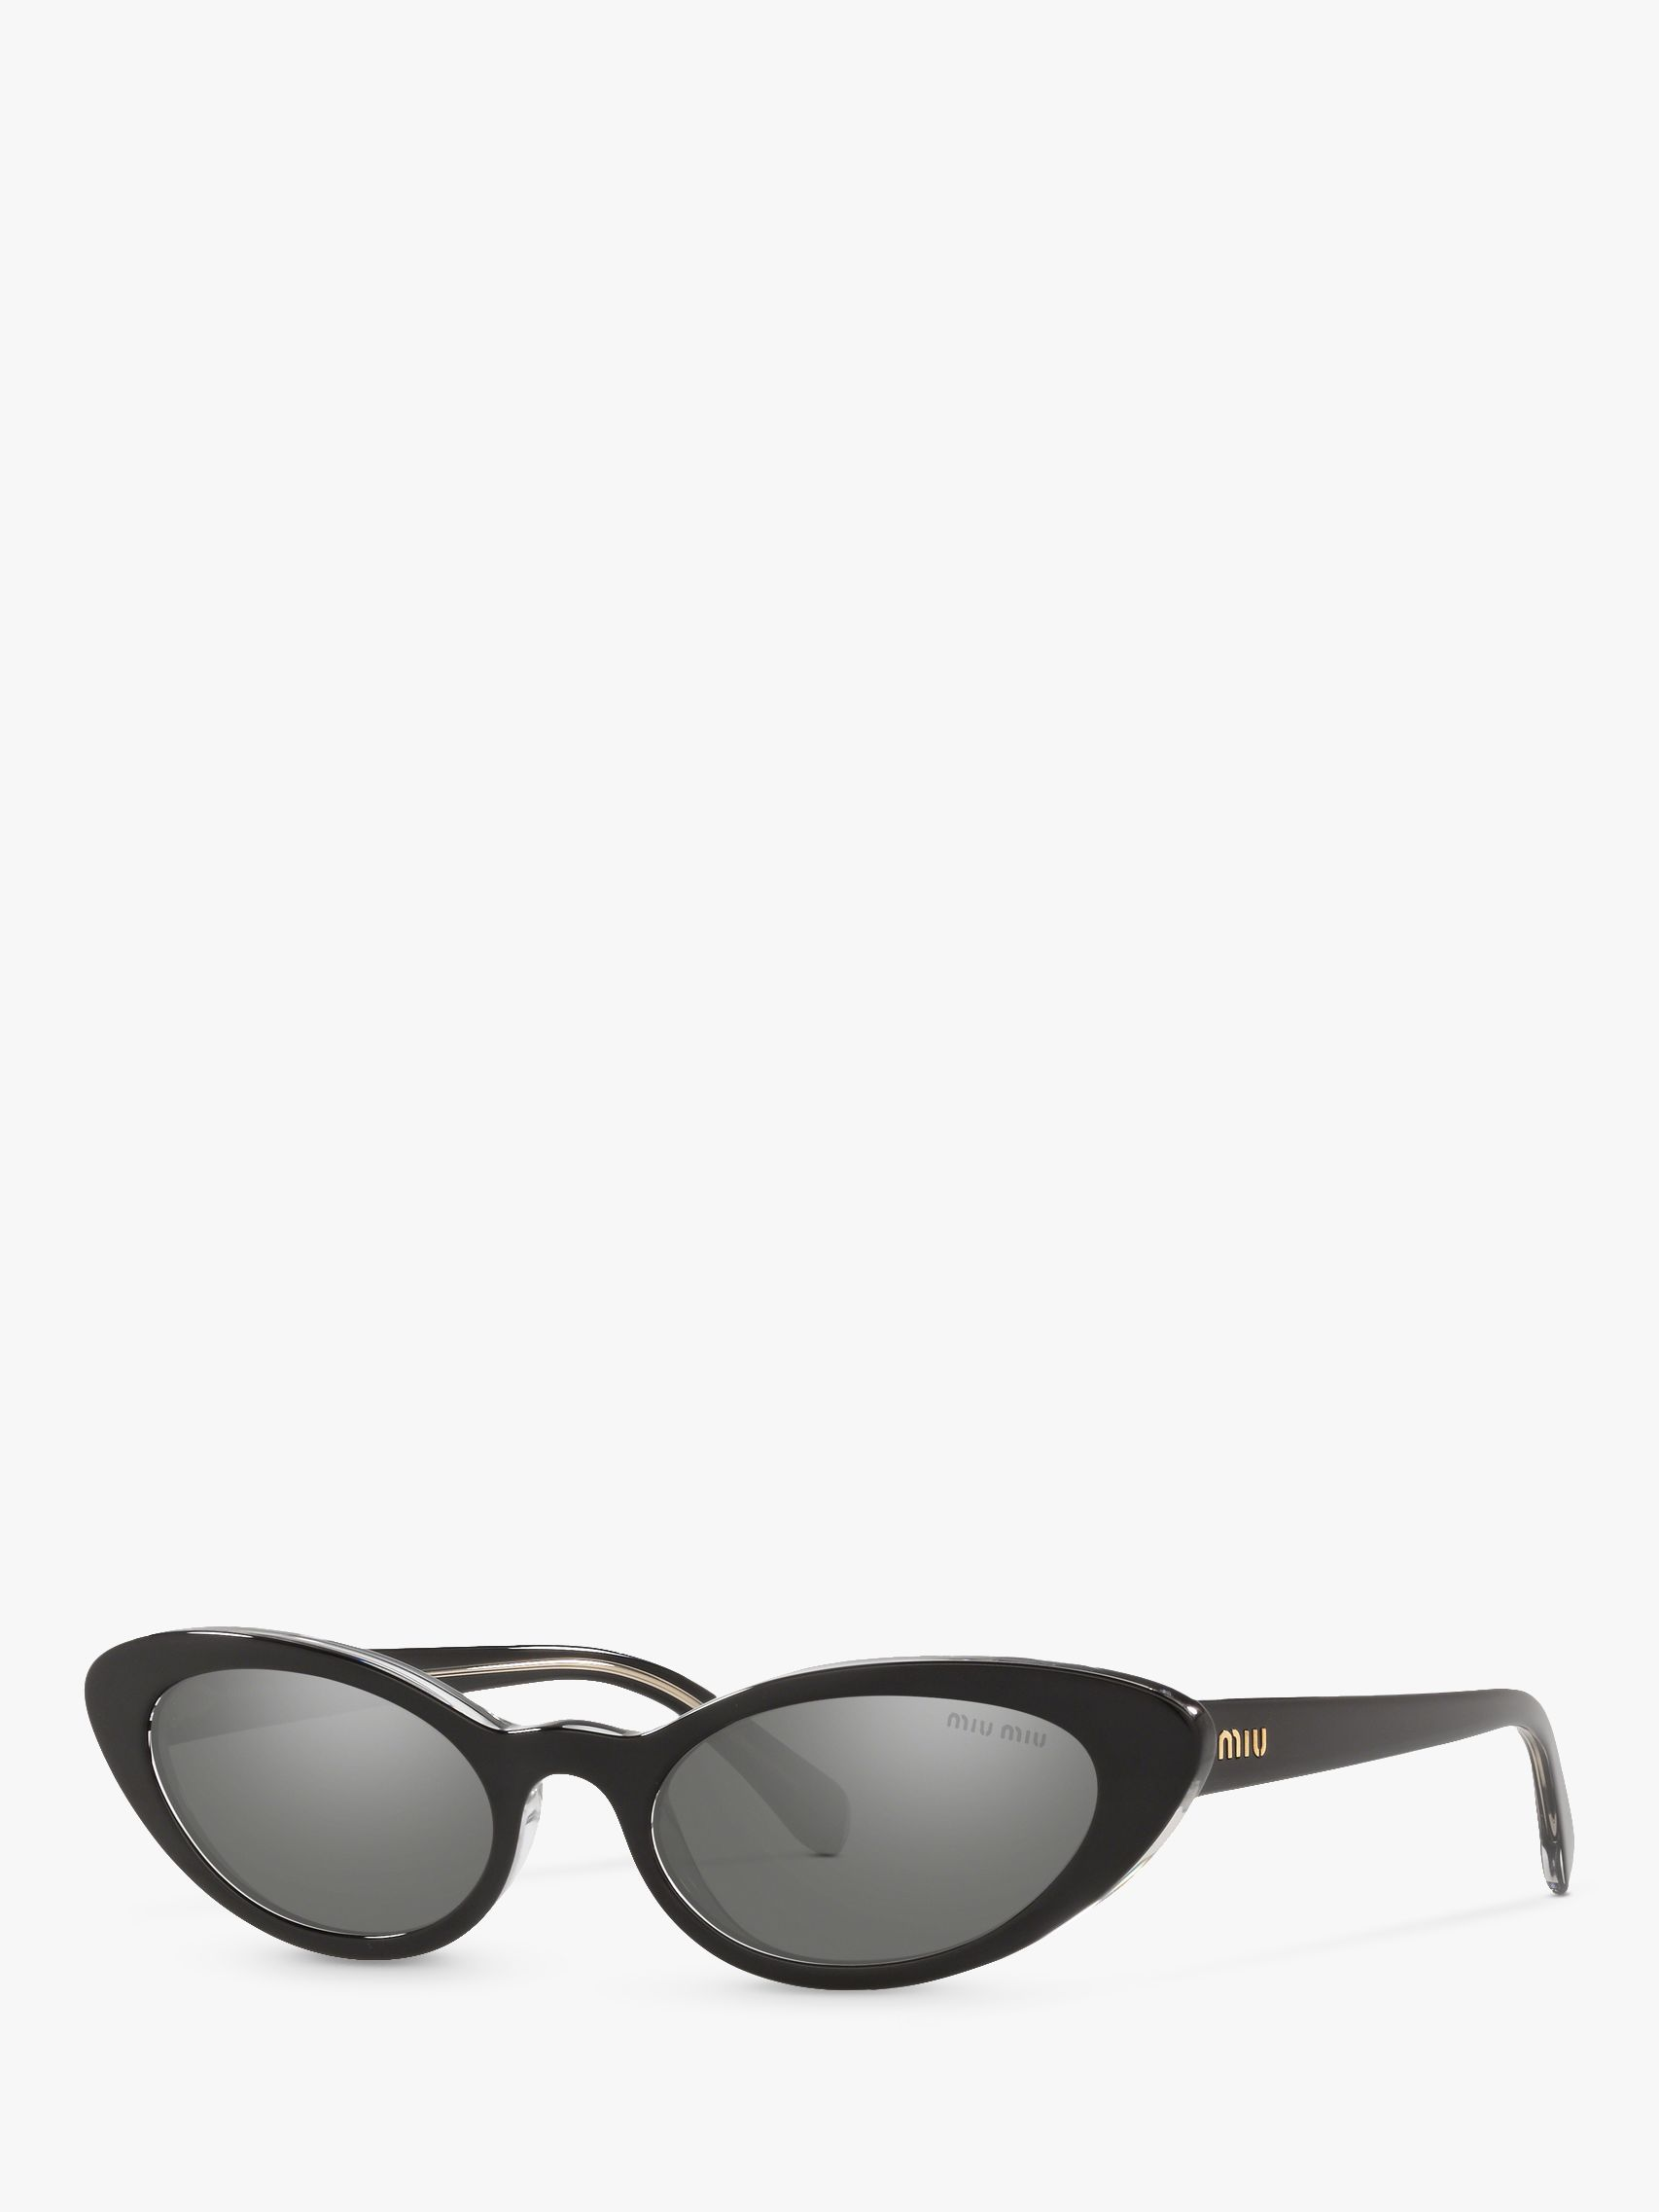 Miu Miu Miu Miu MU 09US Women's Stud Cat's Eye Sunglasses, Black